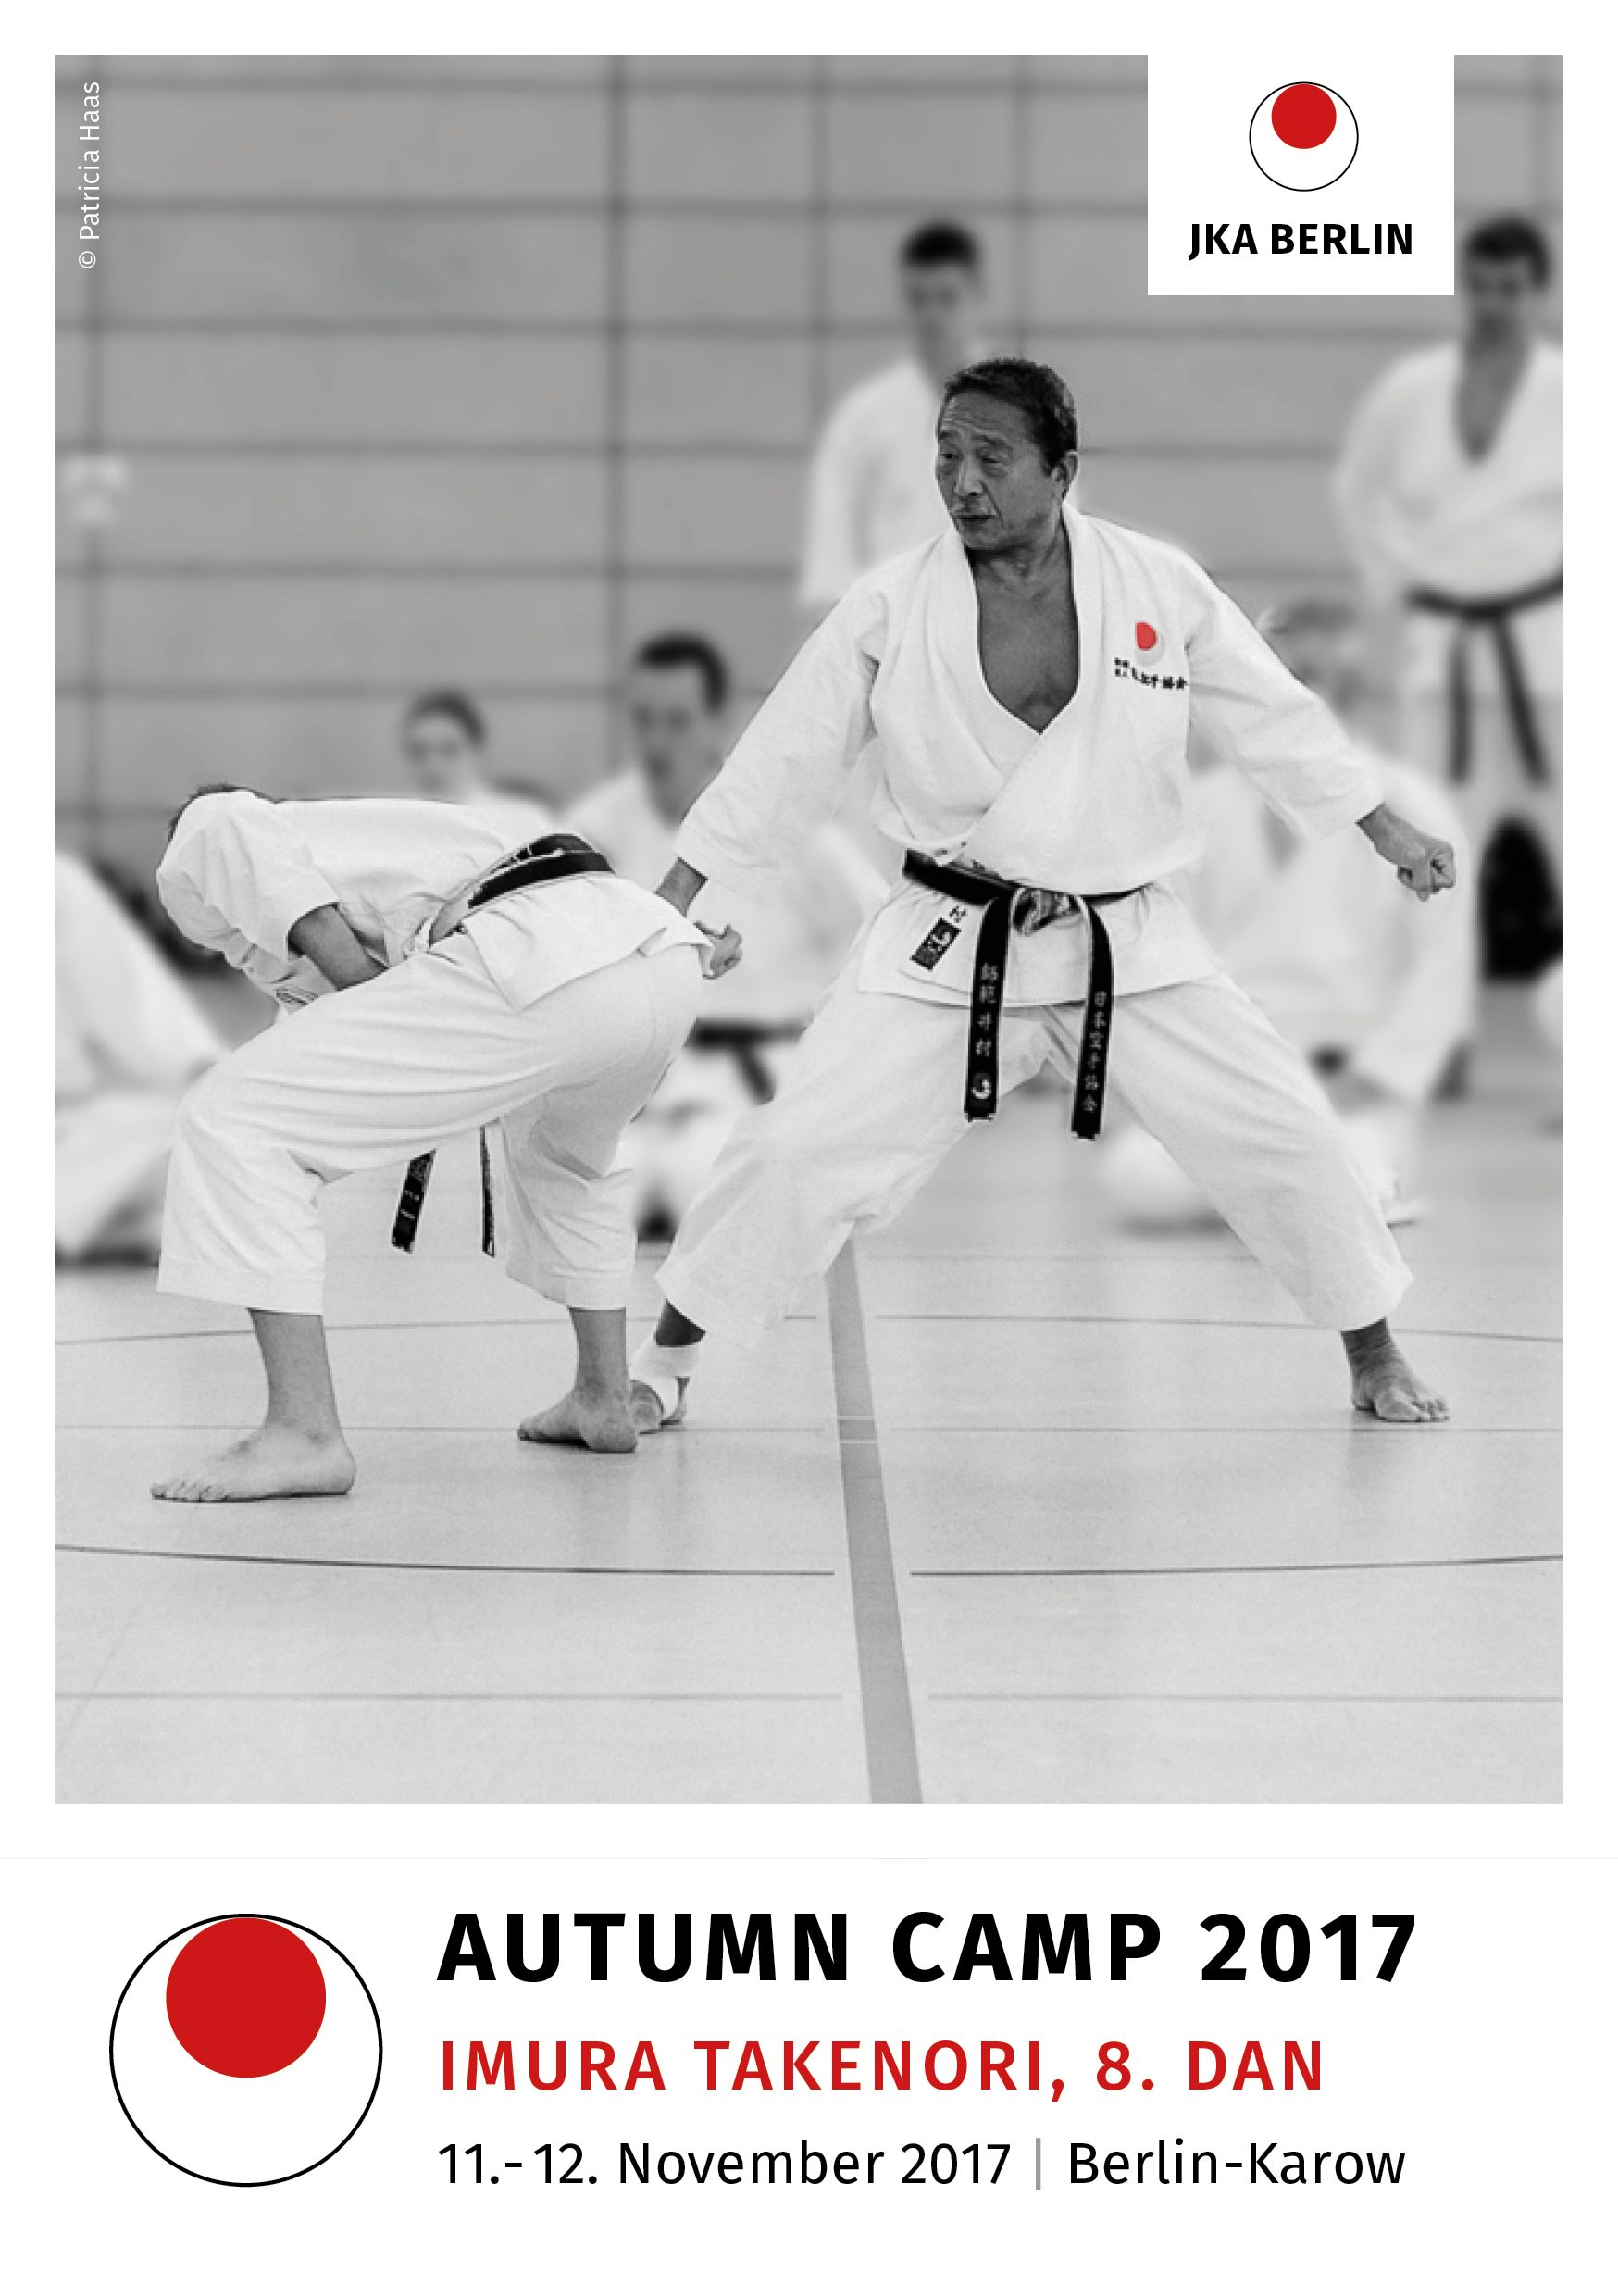 JKA_Flyer_Autumn_Camp_2017_20170709